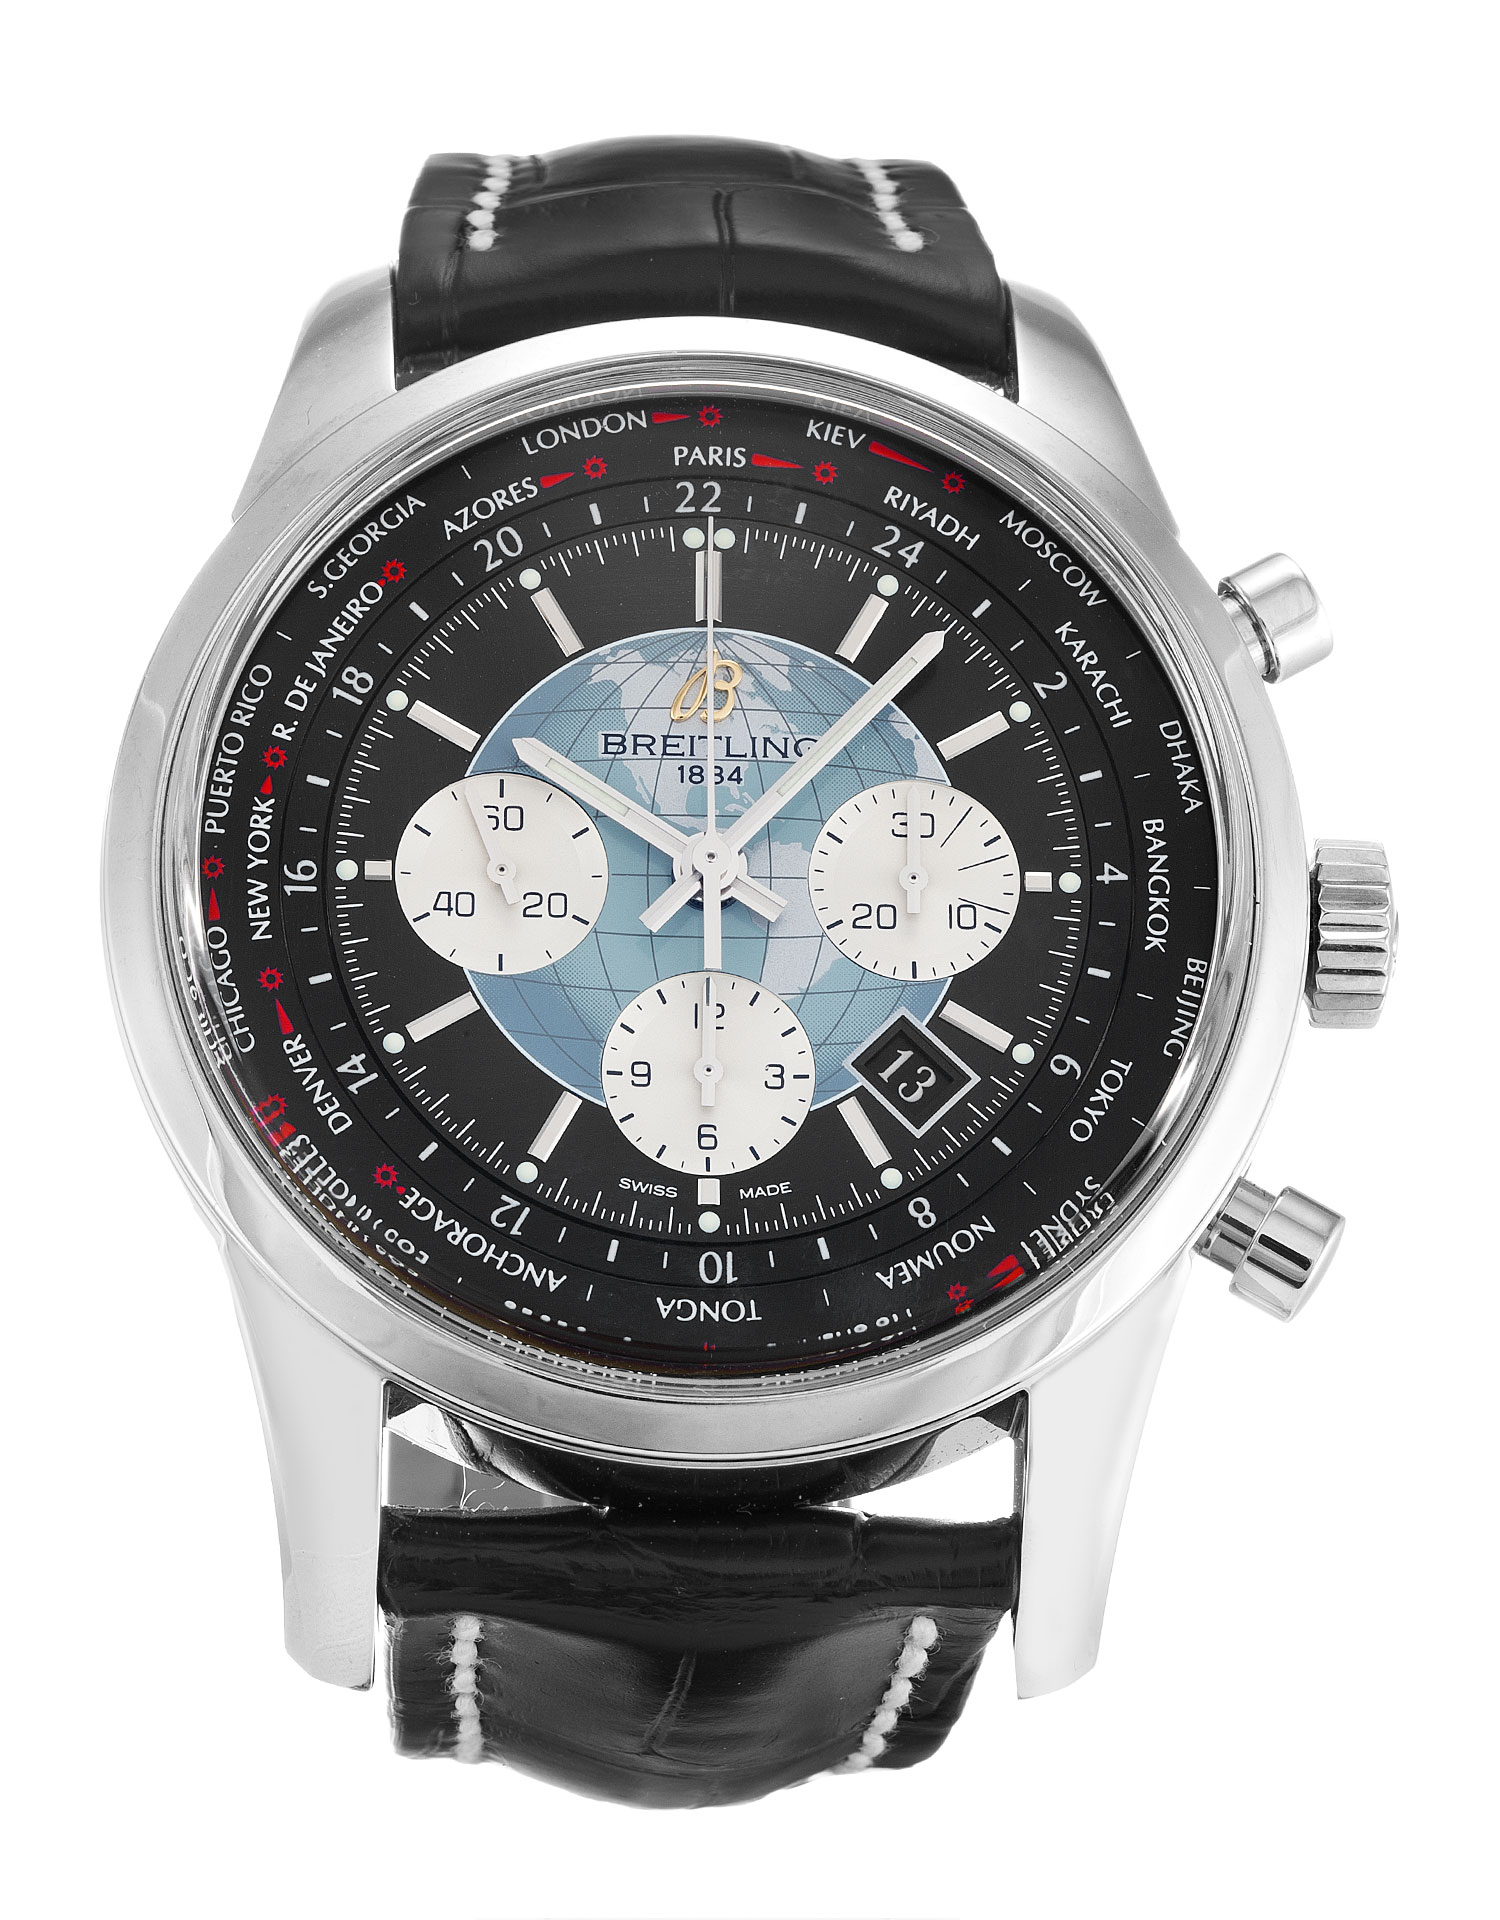 Breitling Transocean Chronograph Ab0510 Mens 46 Mm Steel Case Quartz Movement – iapac.to